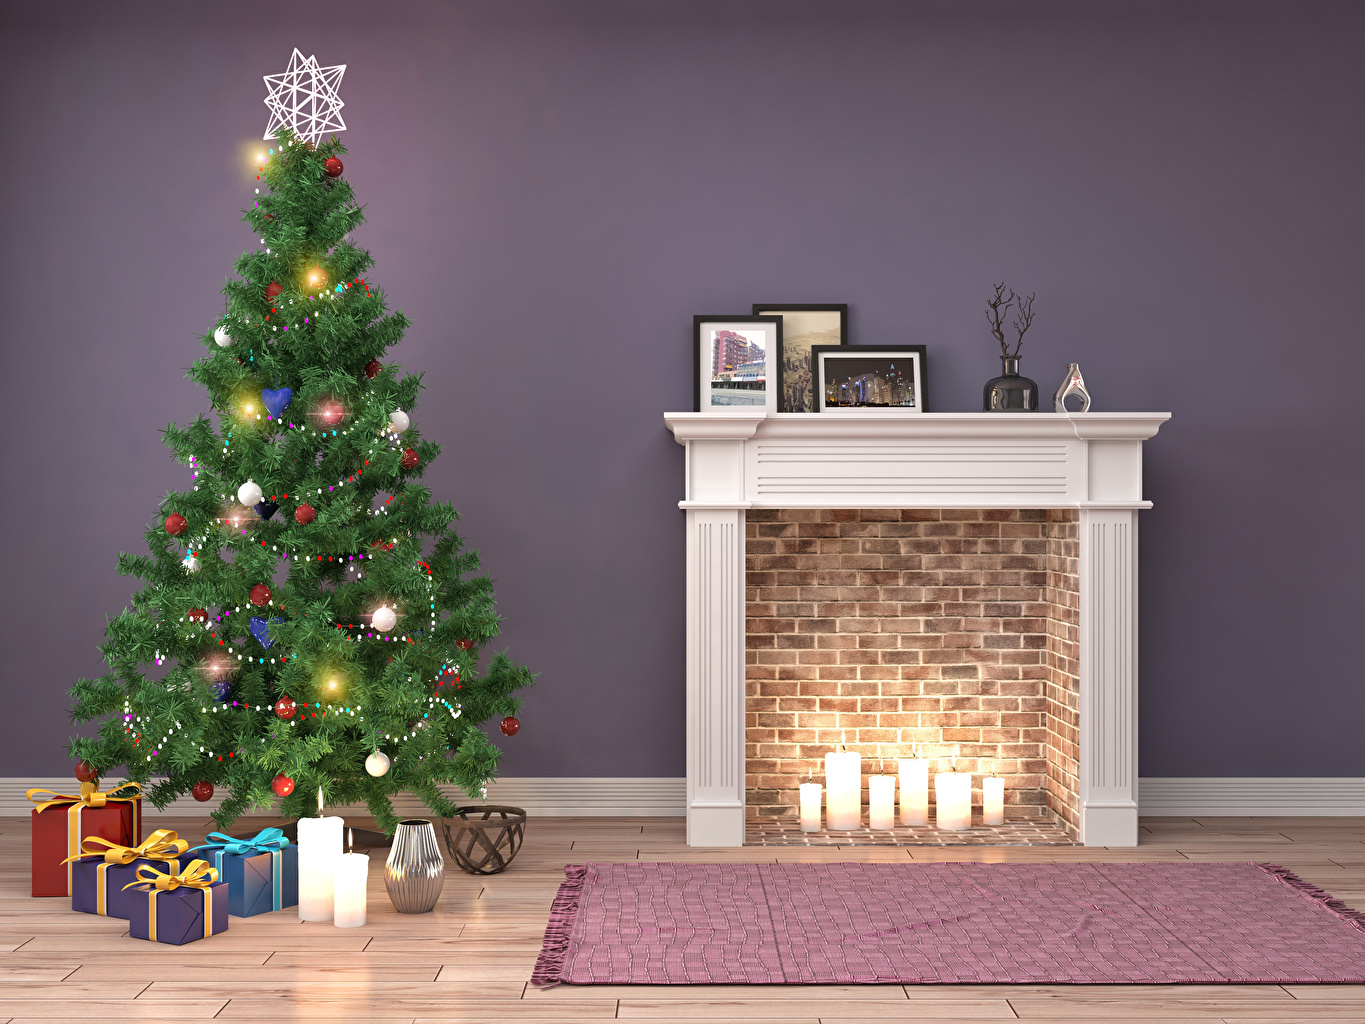 Photos Christmas 3D Graphics Christmas tree Gifts Candles Fairy lights Holidays New year New Year tree present